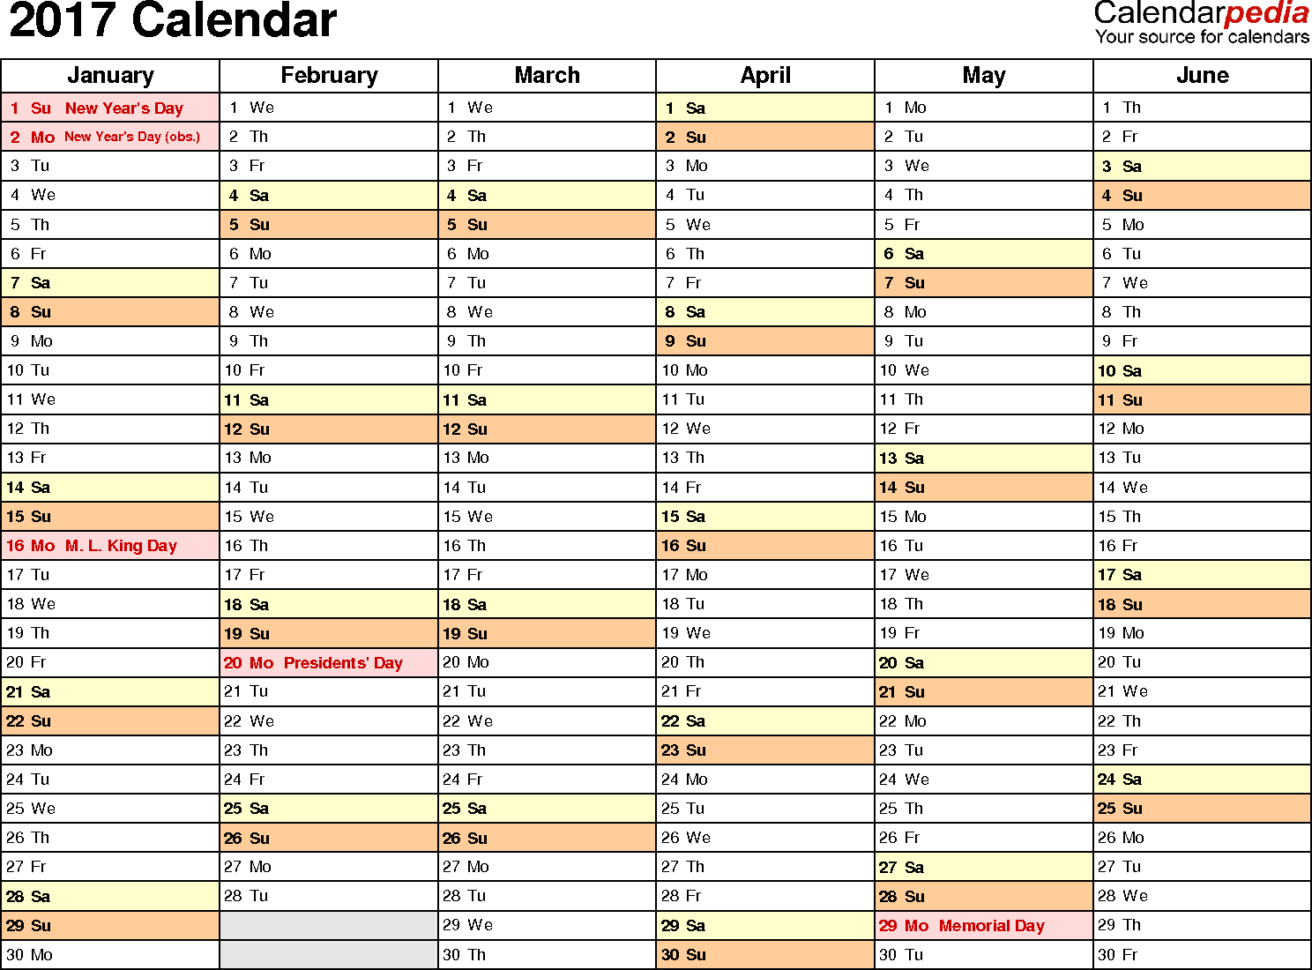 Calendar Excel Spreadsheet Download In 2017 Calendar  Download 17 Free Printable Excel Templates .xlsx